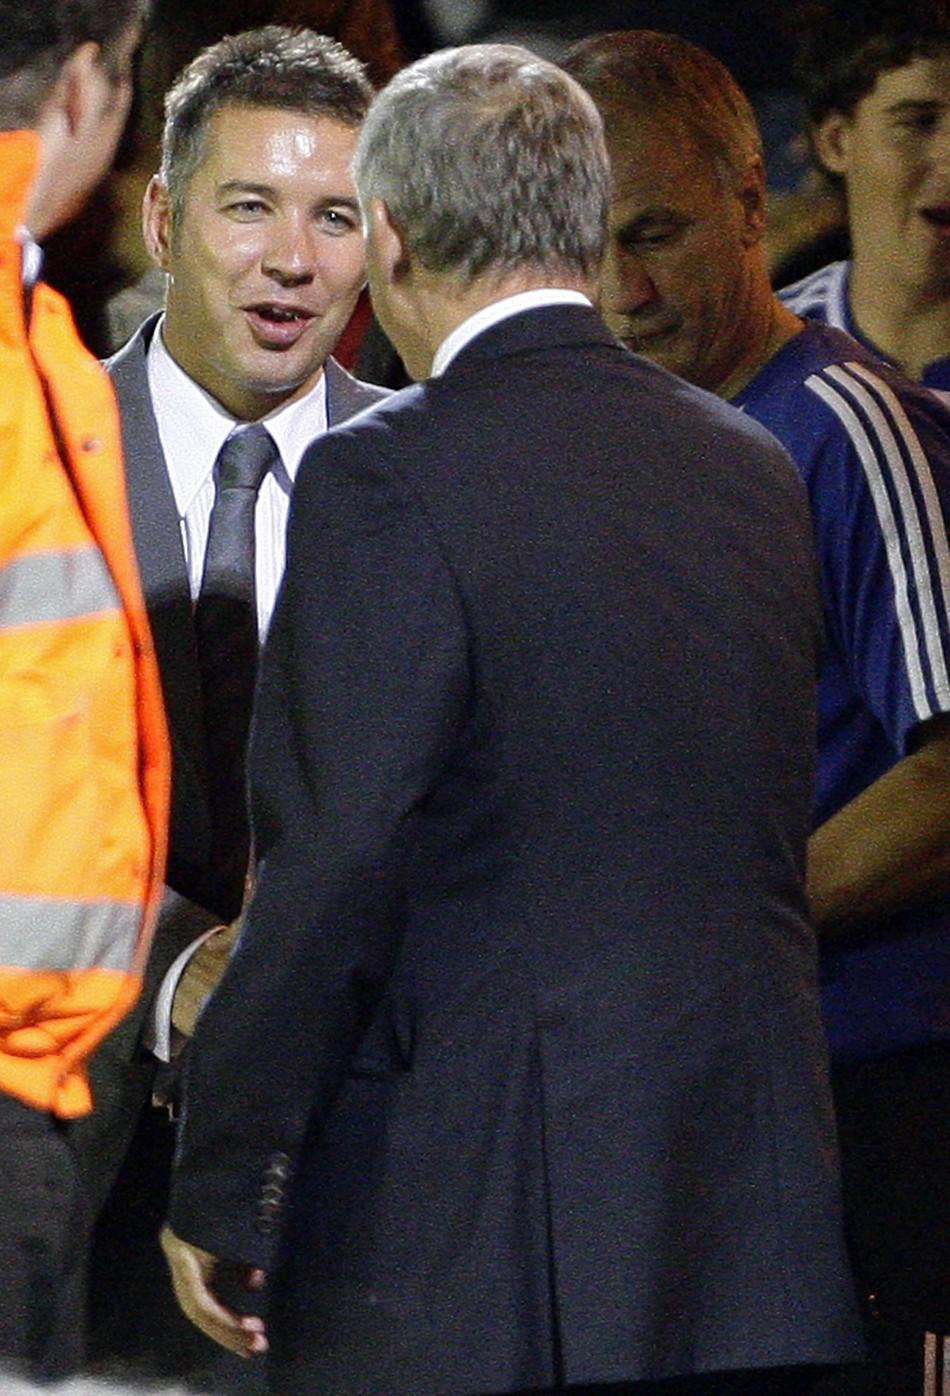 Manchester United's manager Ferguson shakes hand of his son and Peterborough United manager Darren after their pre-season friendly soccer match in Peterborough